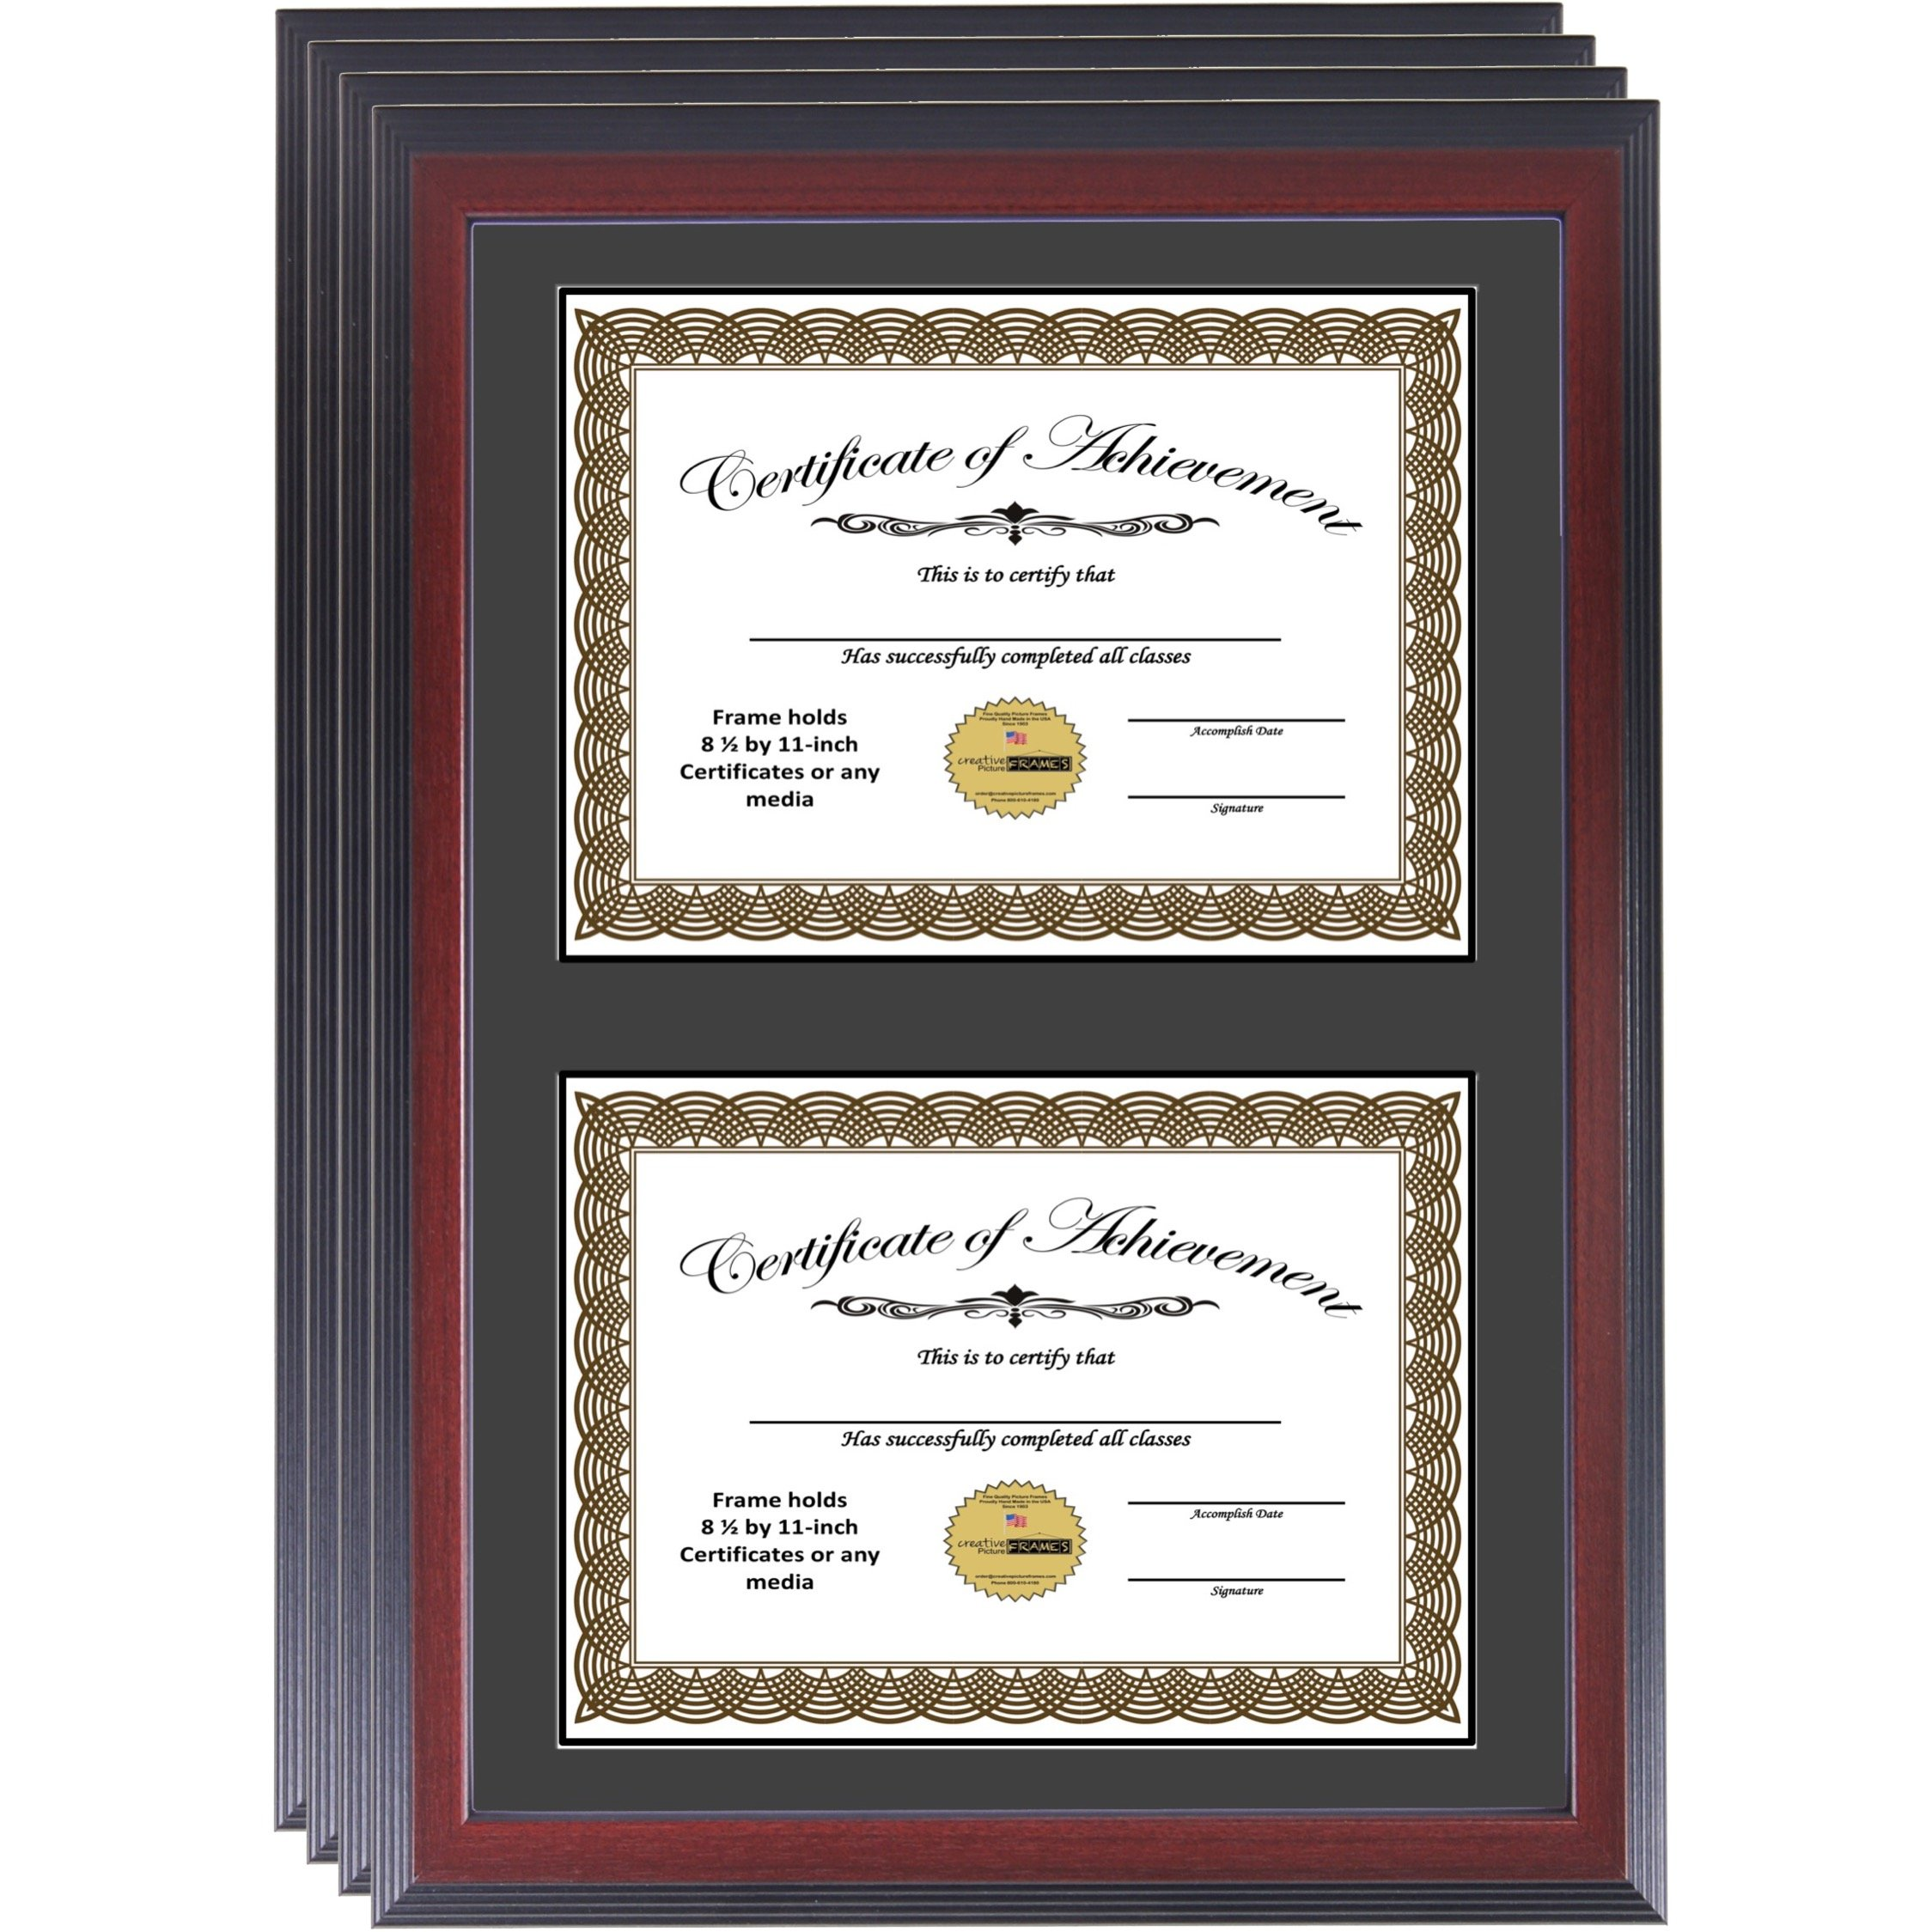 CreativePF [14x20mh-b] Mahogany Finish Double Diploma Frame with Black Mat, Holds Two 8.5 by 11-inch Documents with Wall Hanger (4-Pack)